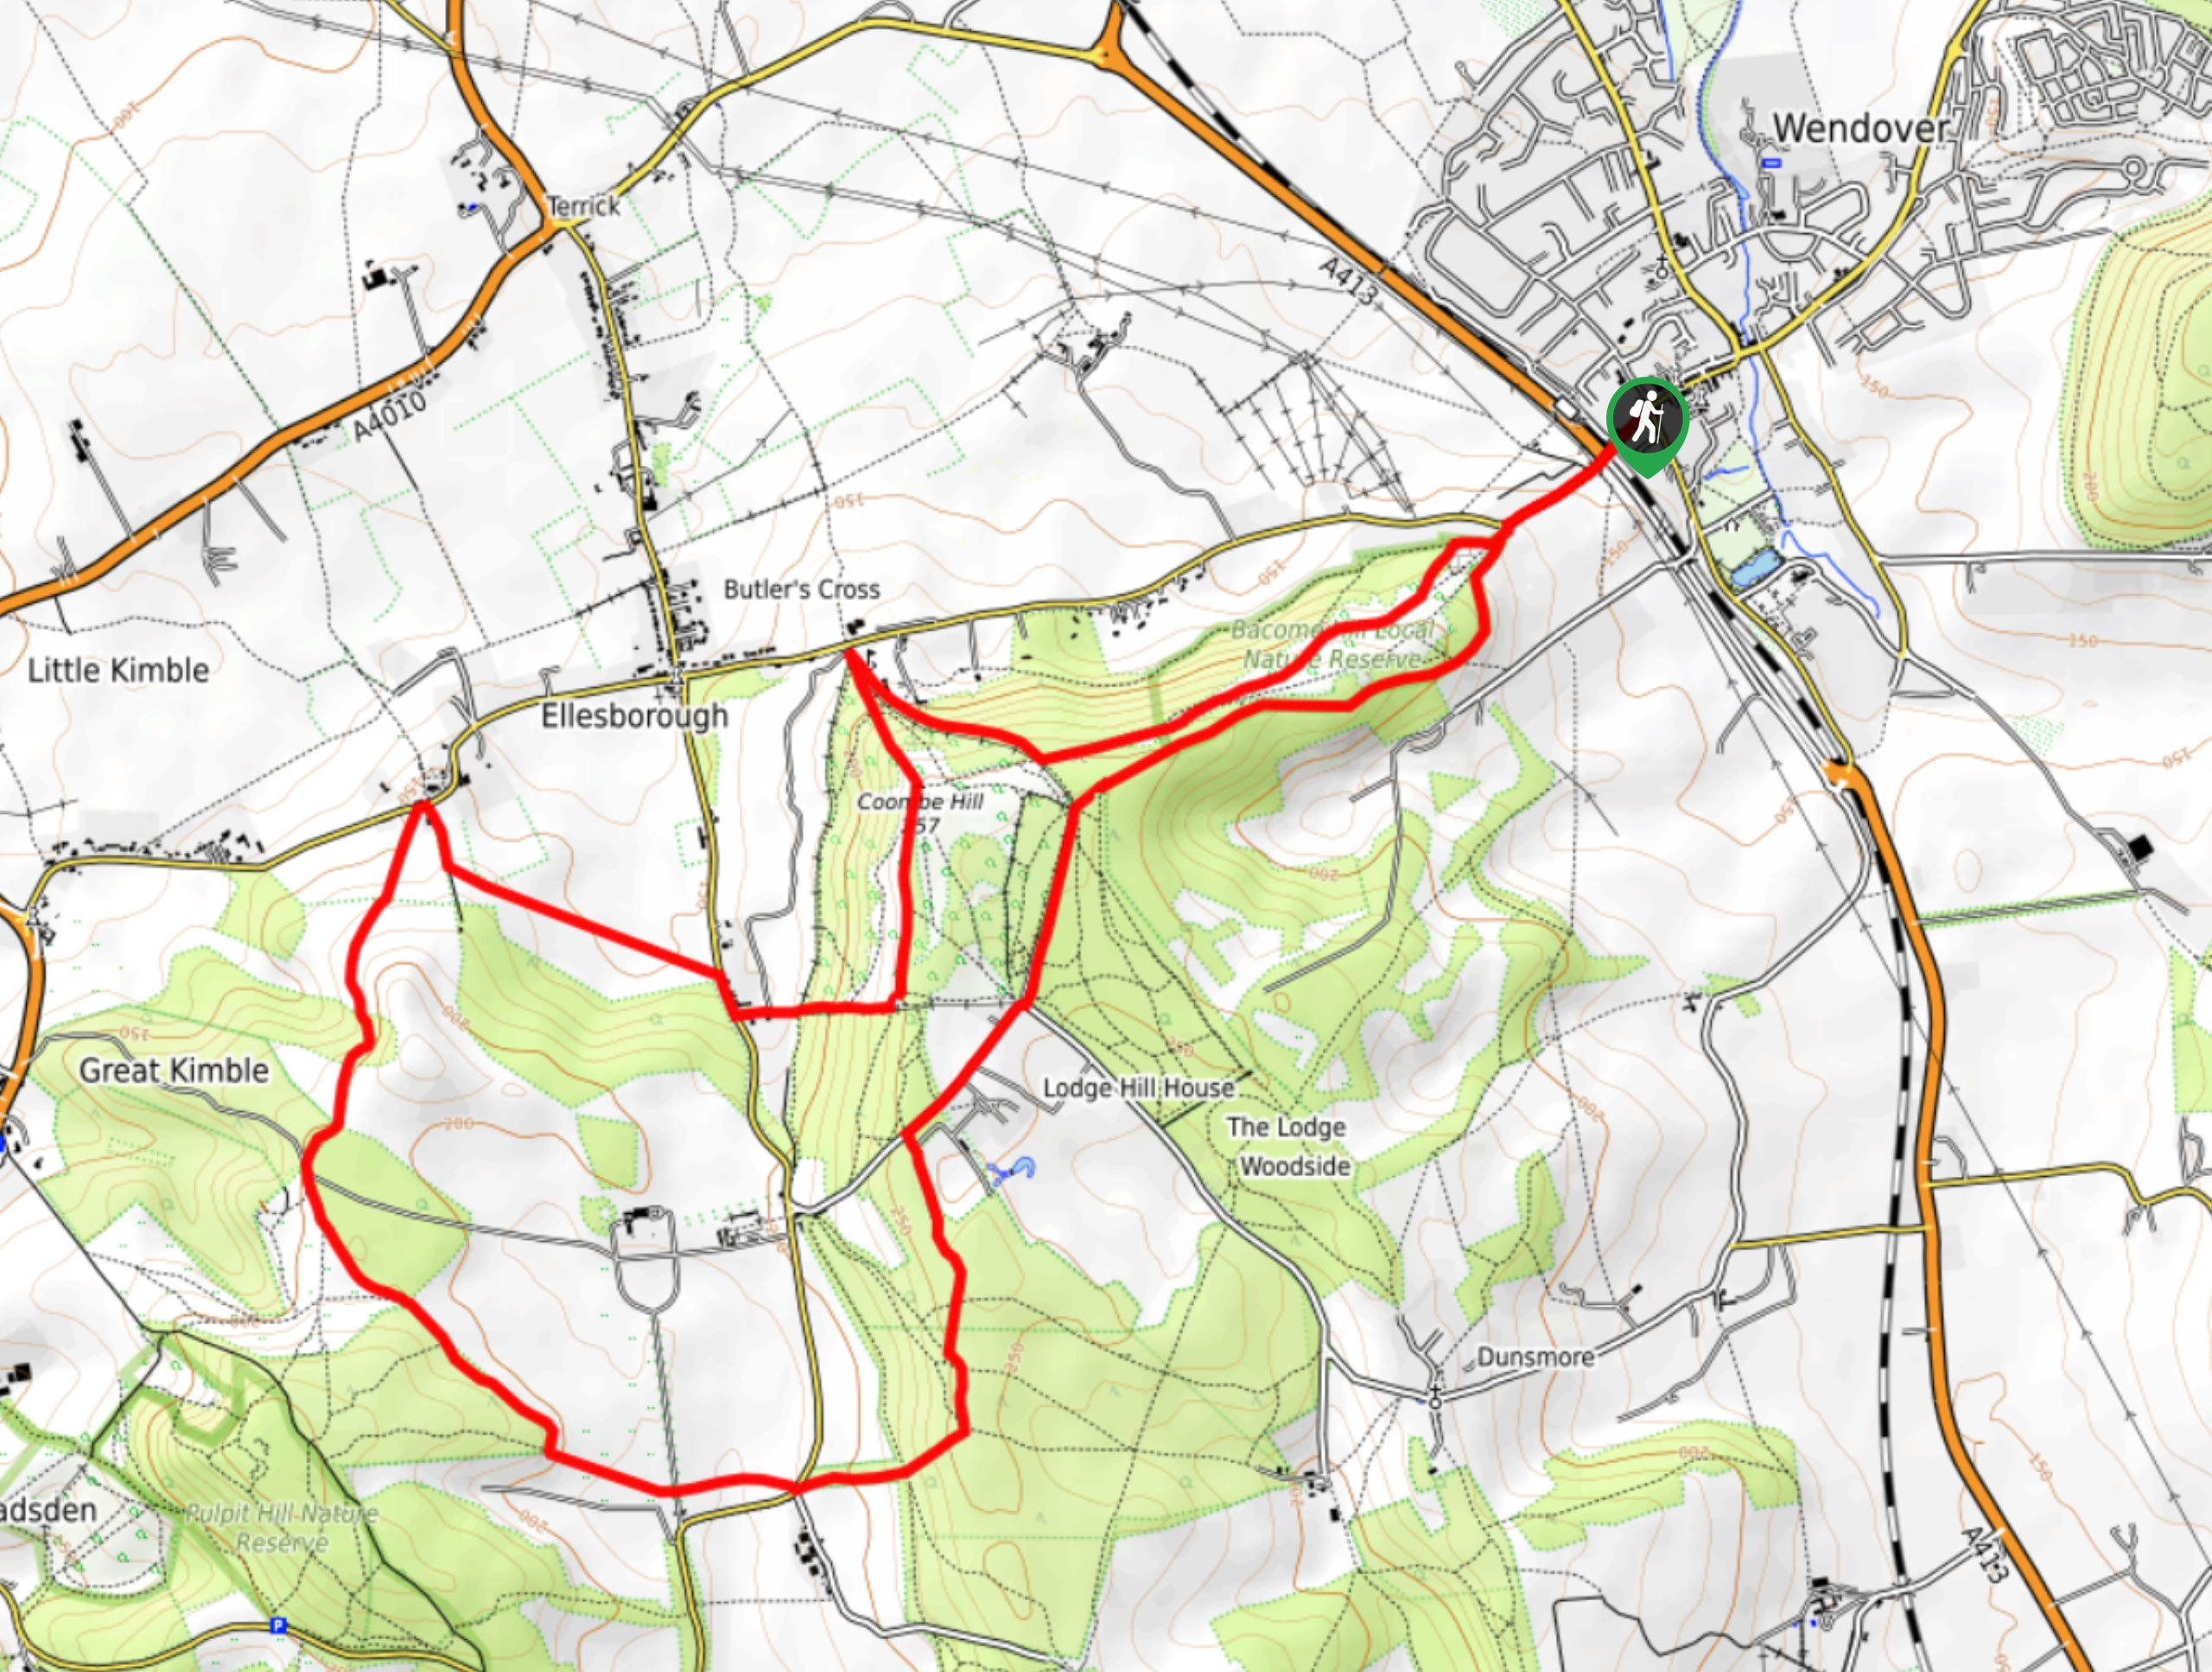 Coombe Hill and Chequers Court Circular Walk Map